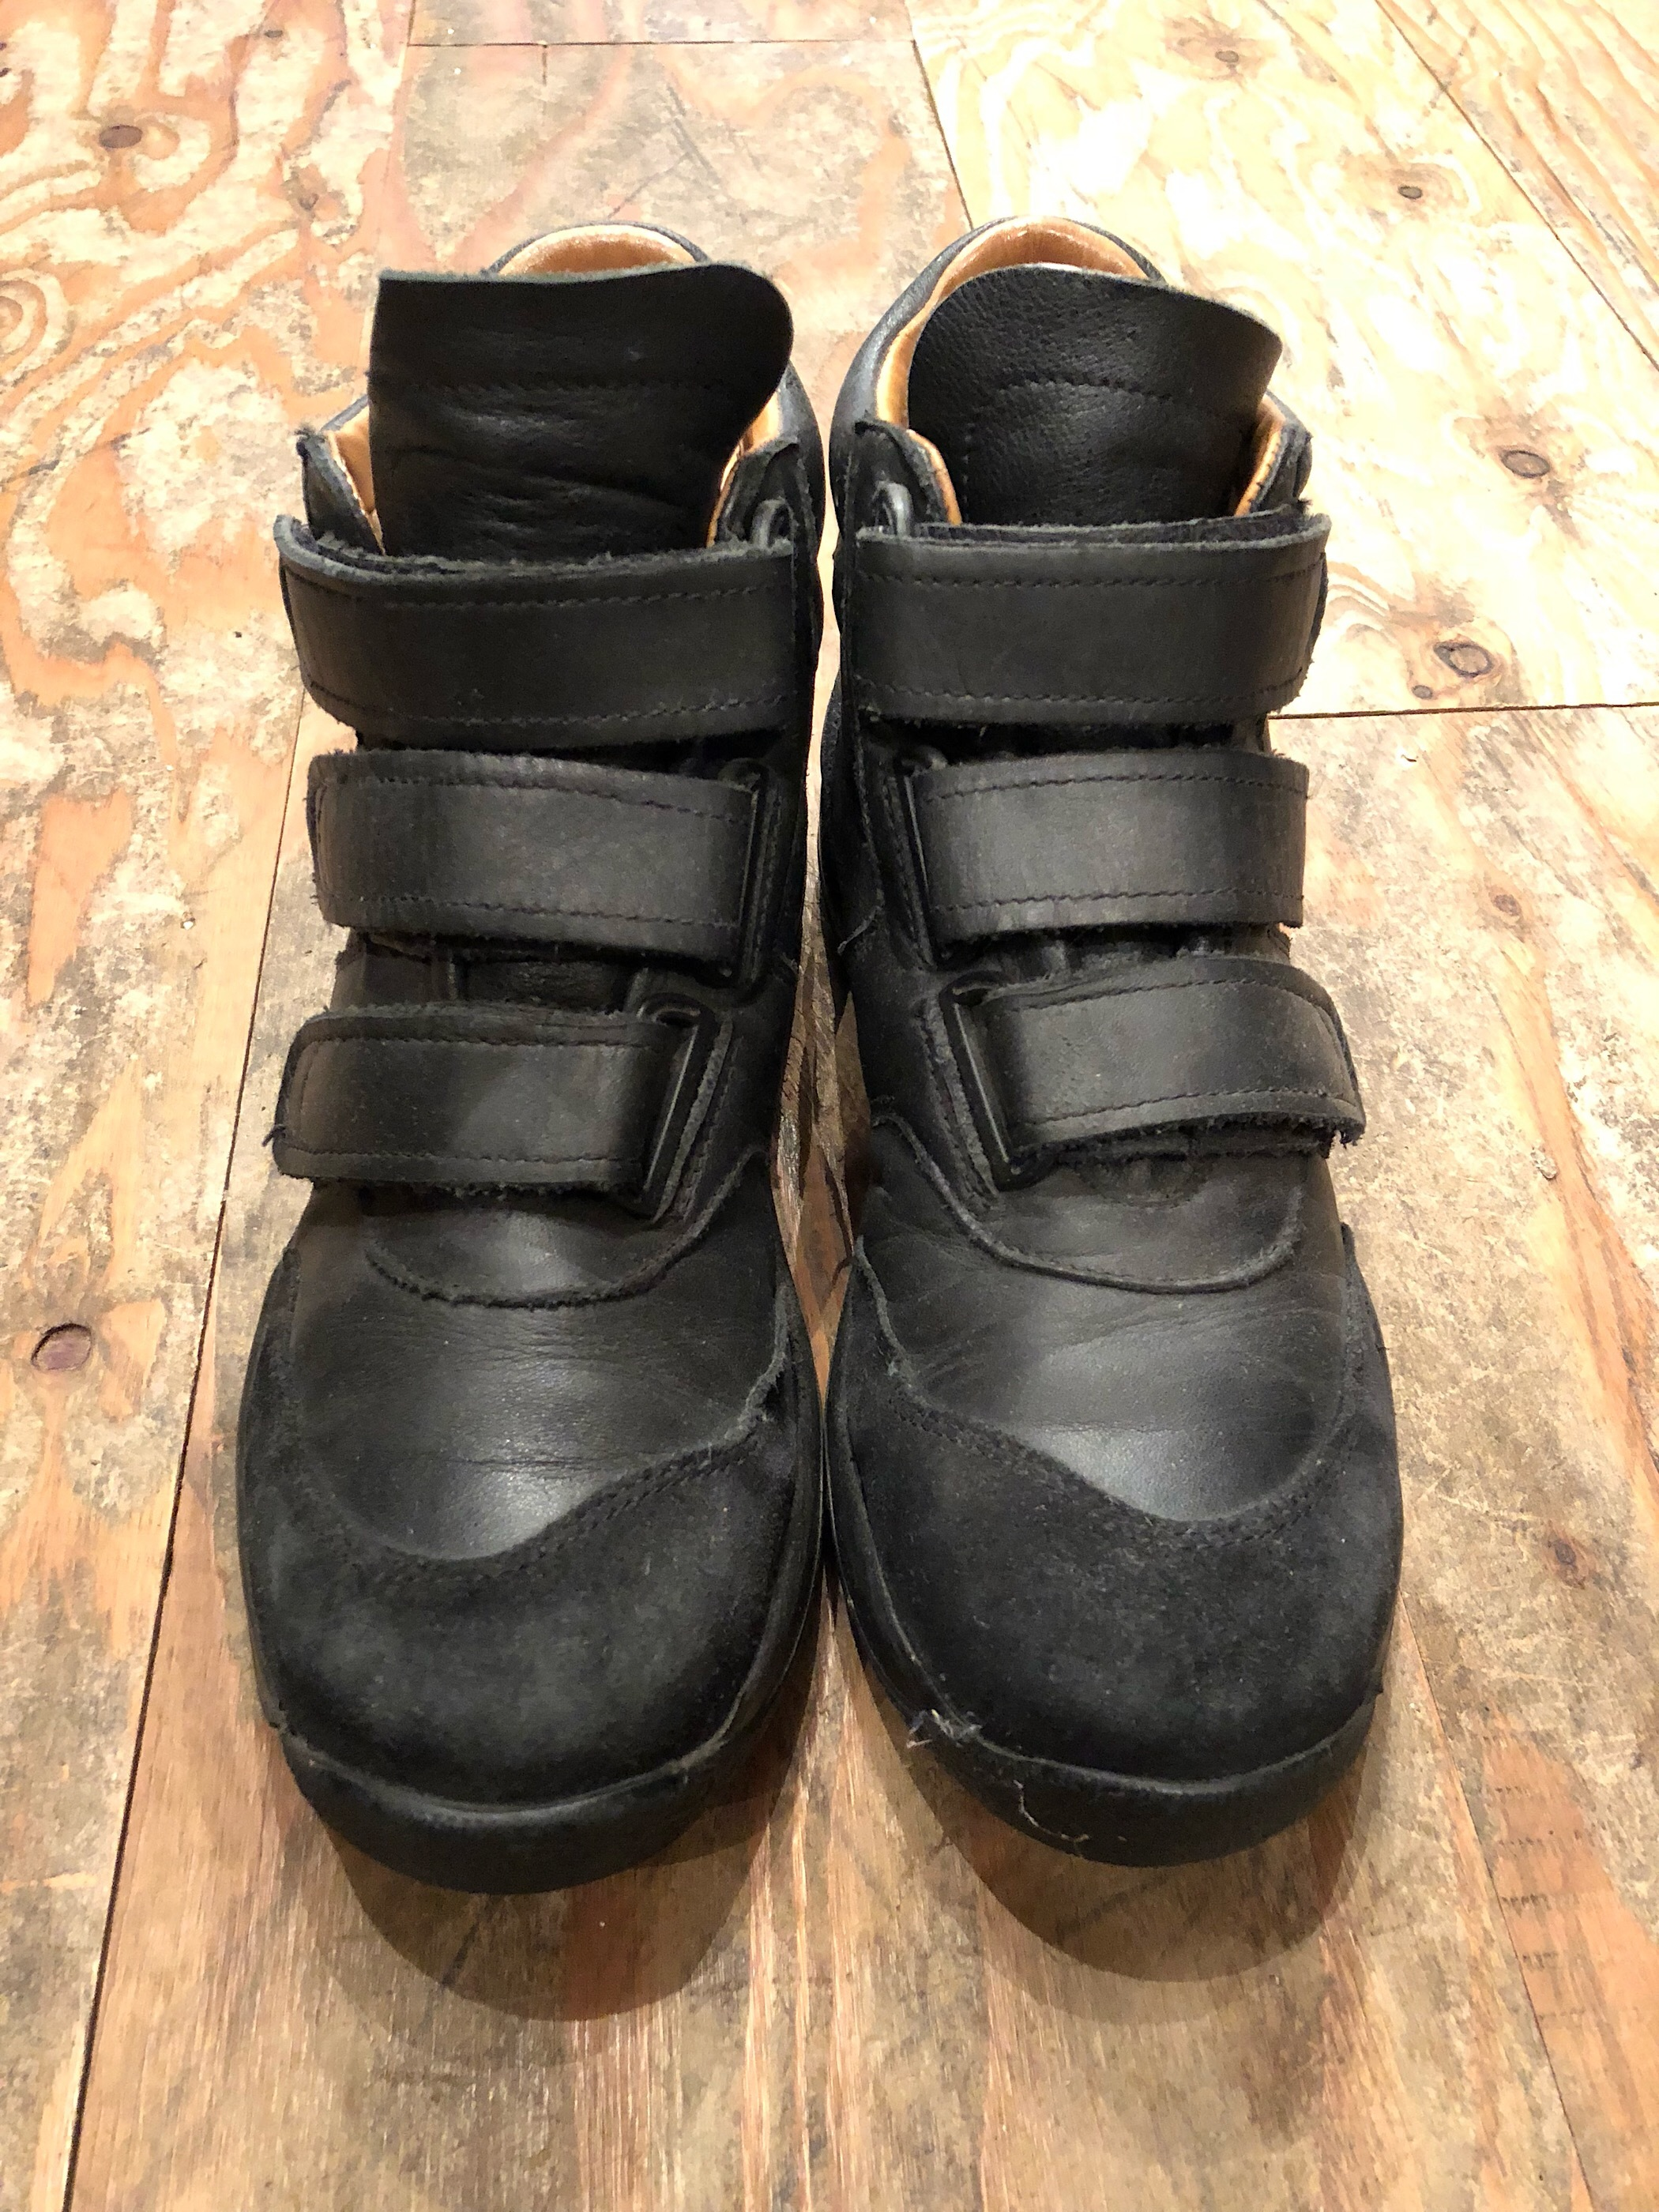 German military Velcro shoes